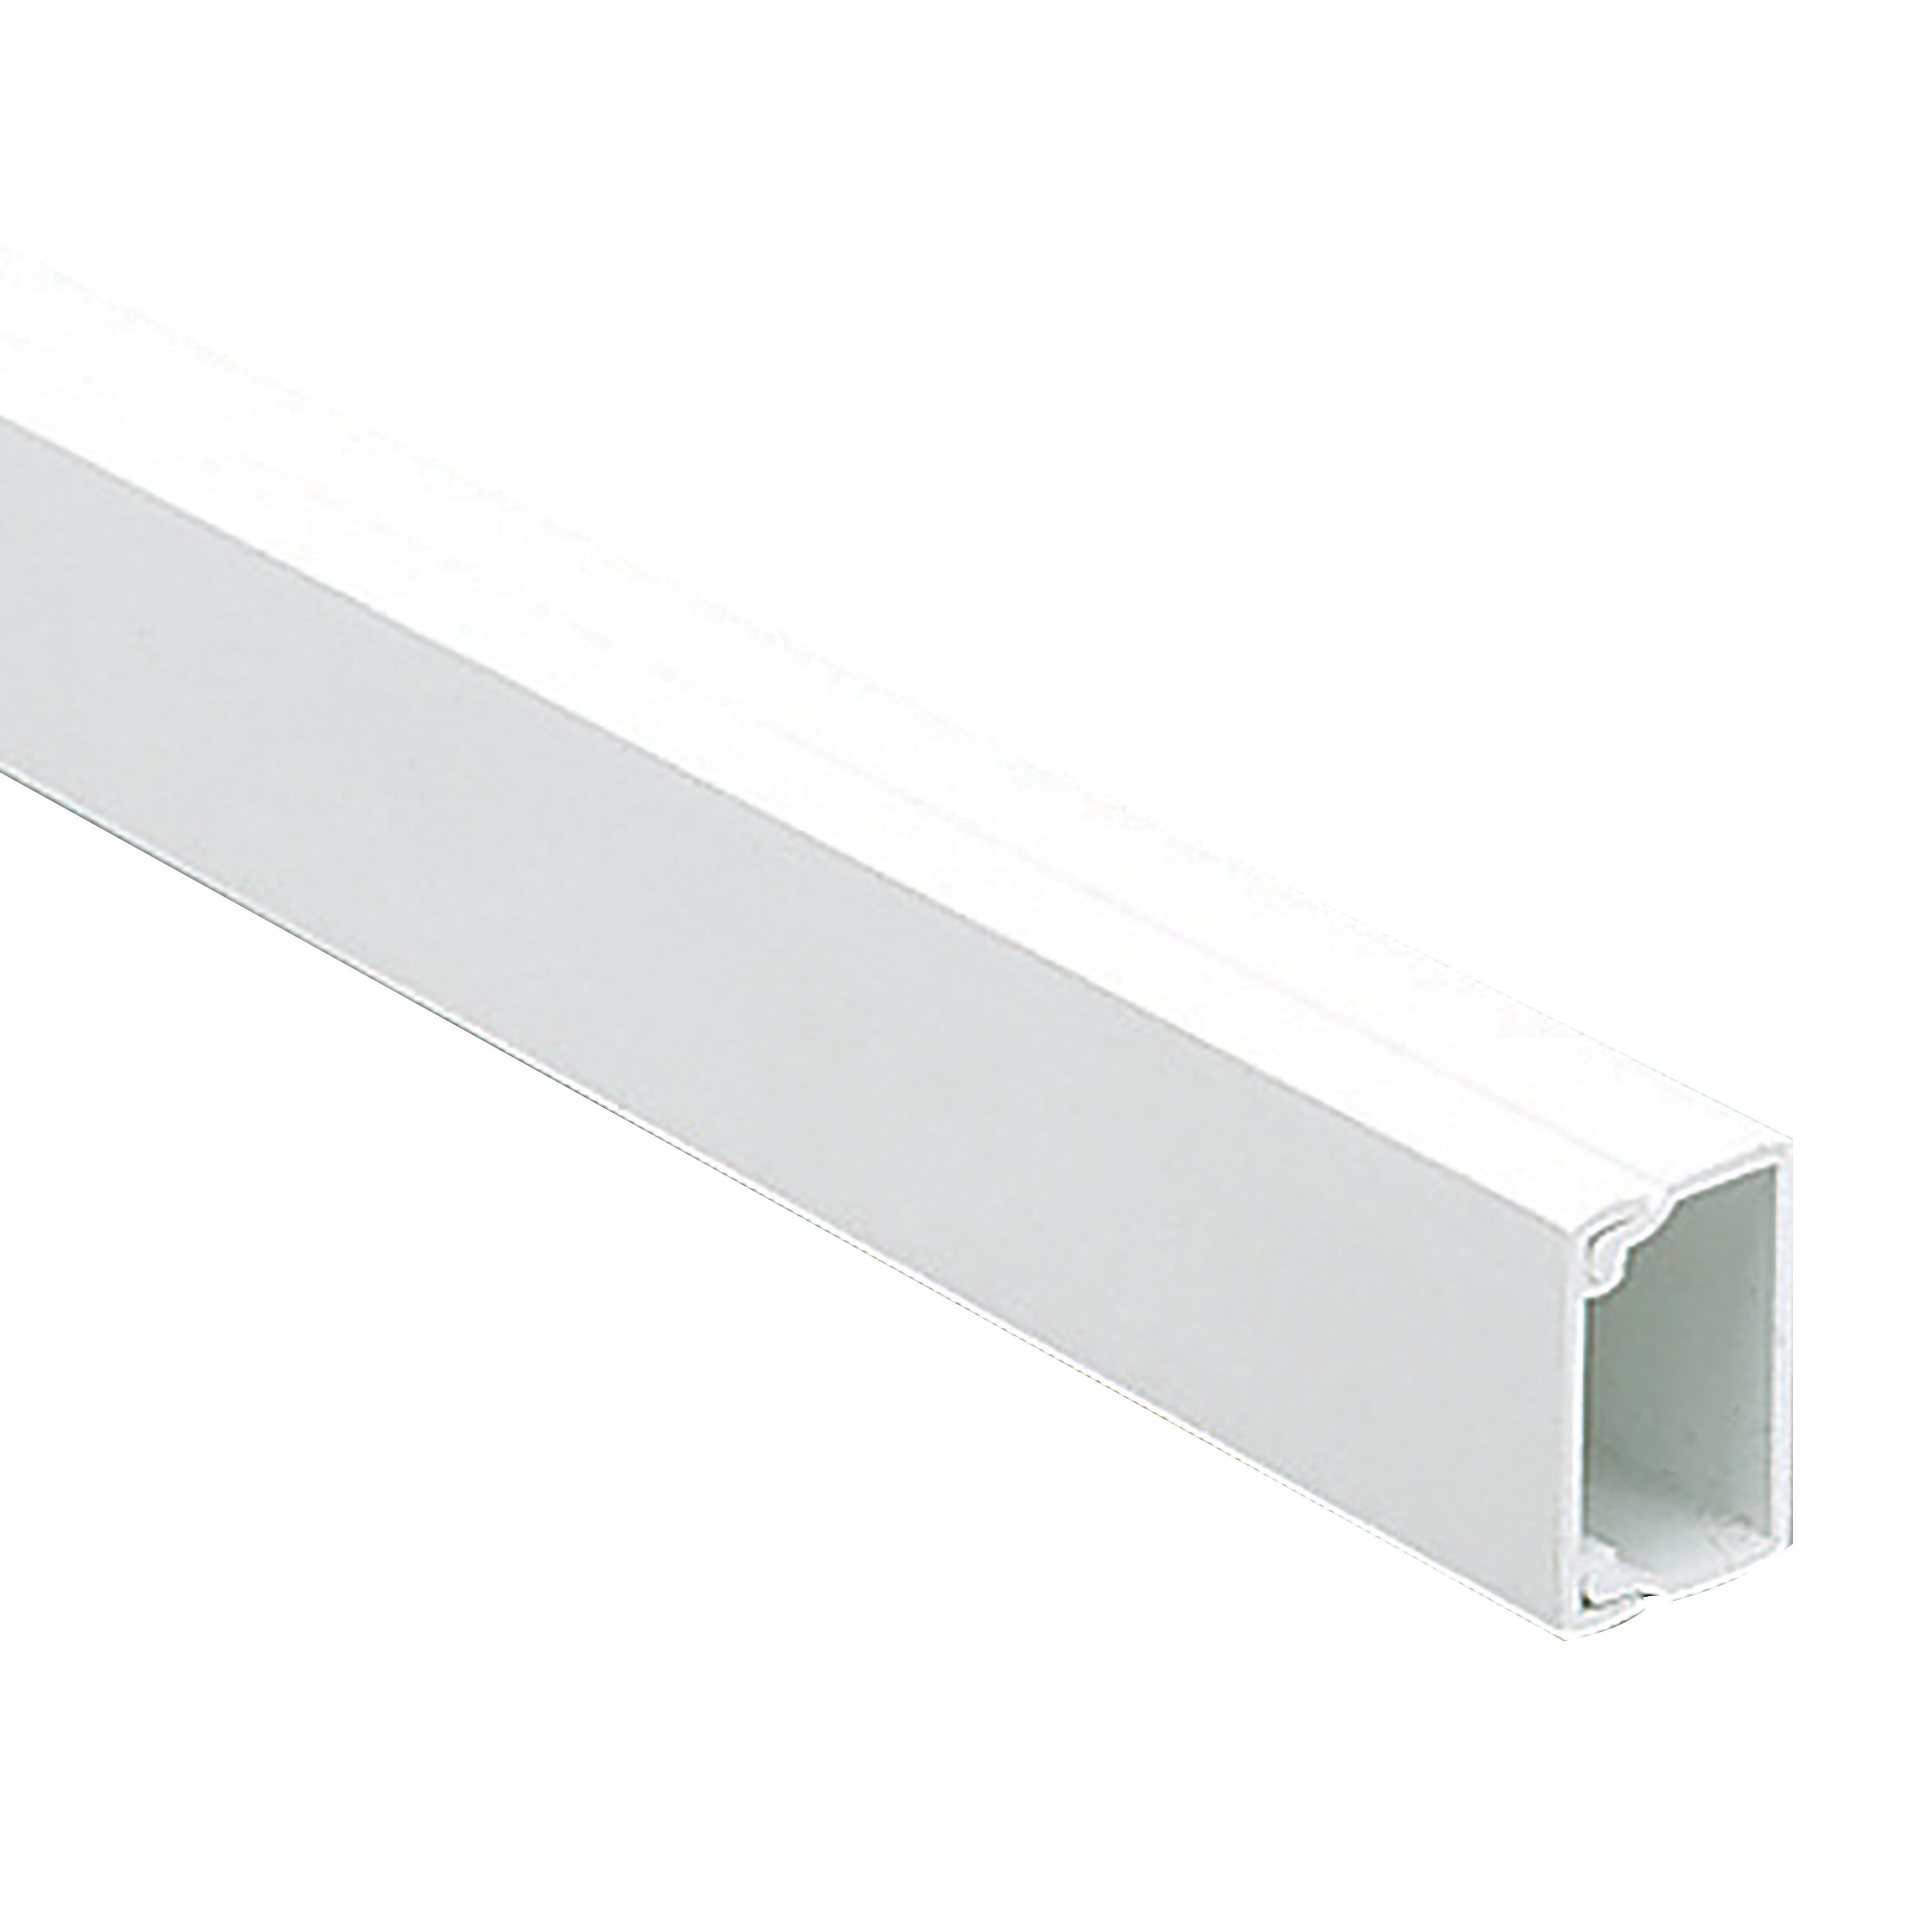 Mk 40mm X 16mm 3m White Mini Trunking Departments Diy At Bq Of Pvc Conduits Pipes Electrical Trunkings Plumbing